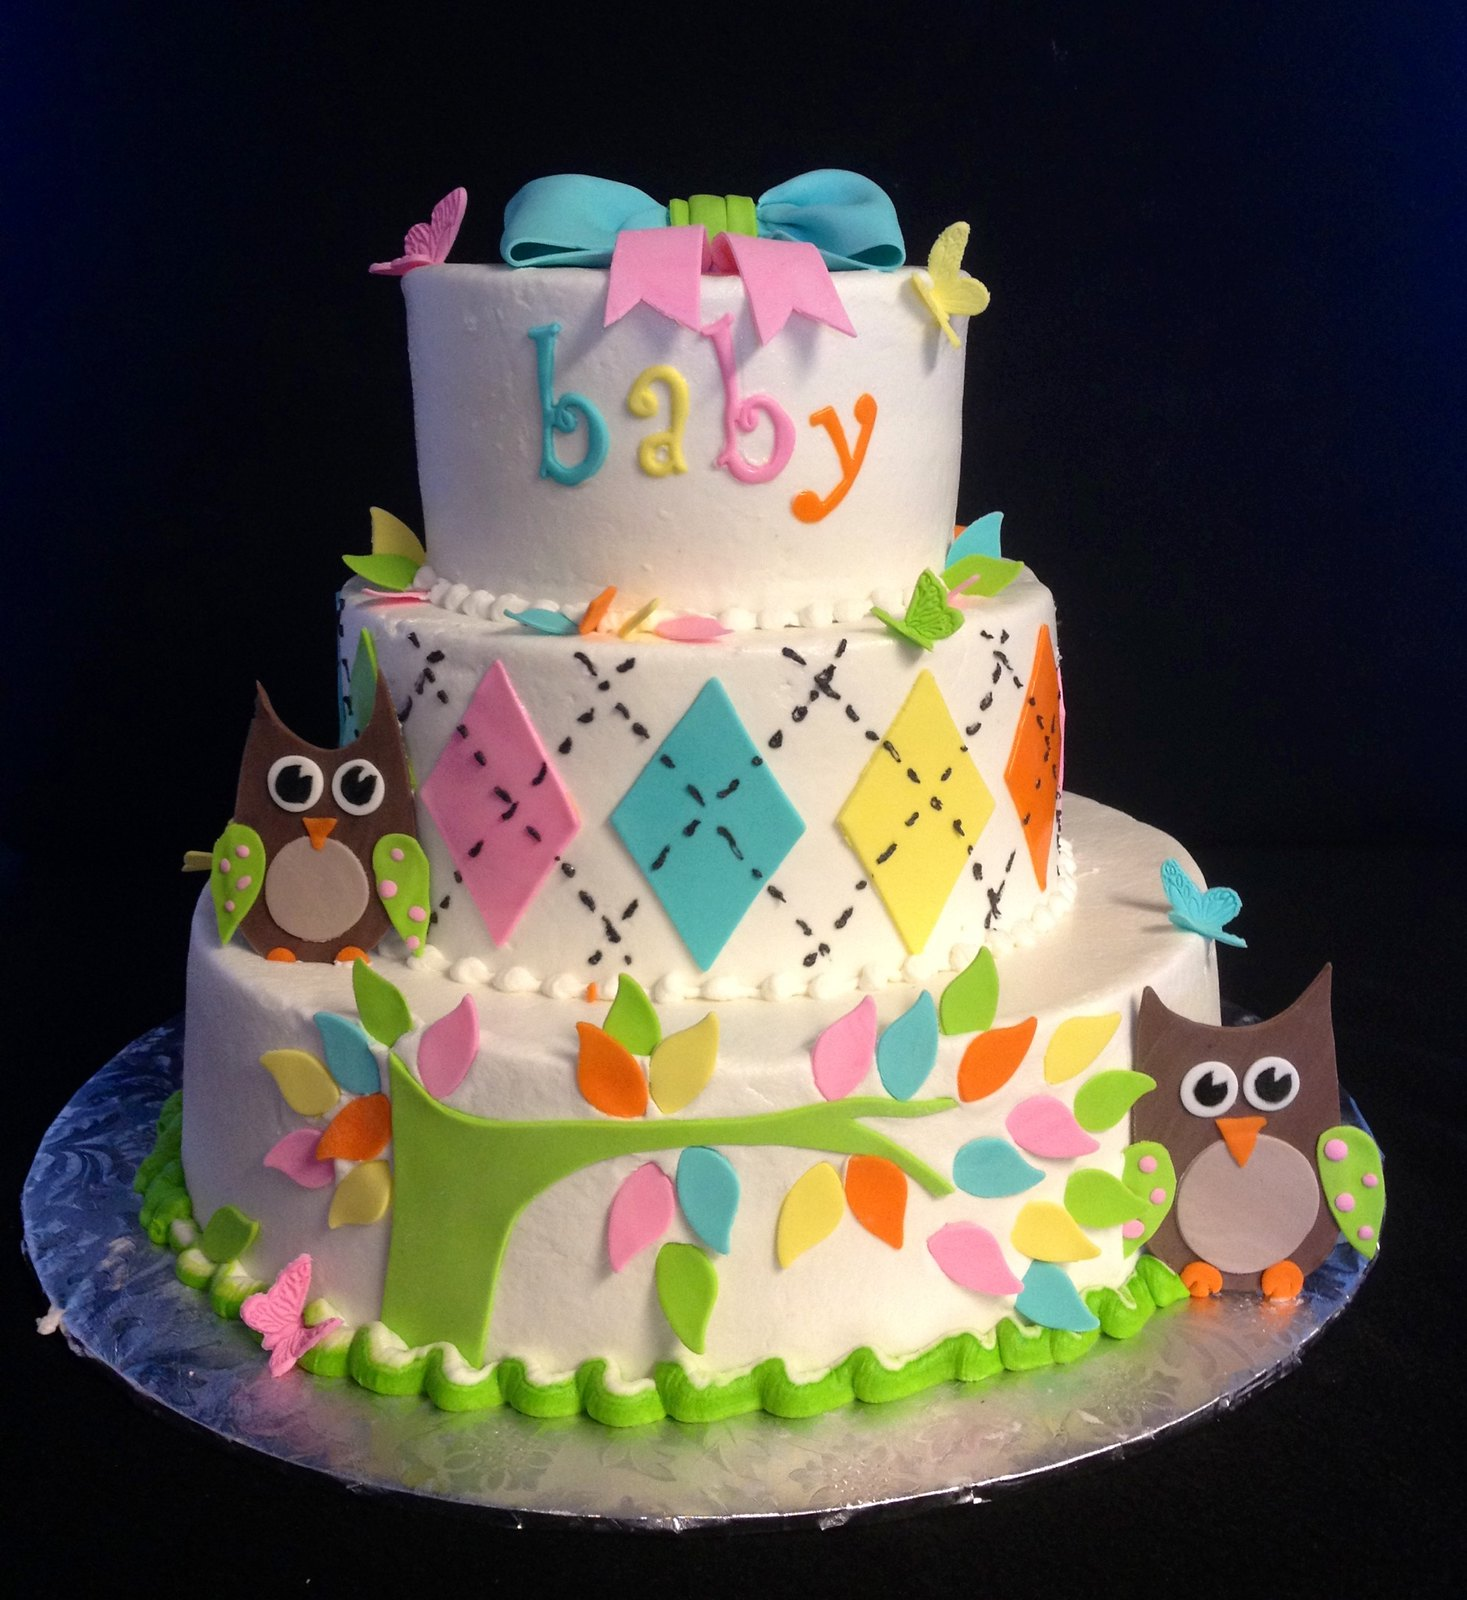 Owl Cupcakes For Baby Shower: 6996696410_bfb8c20eff_h.jpg